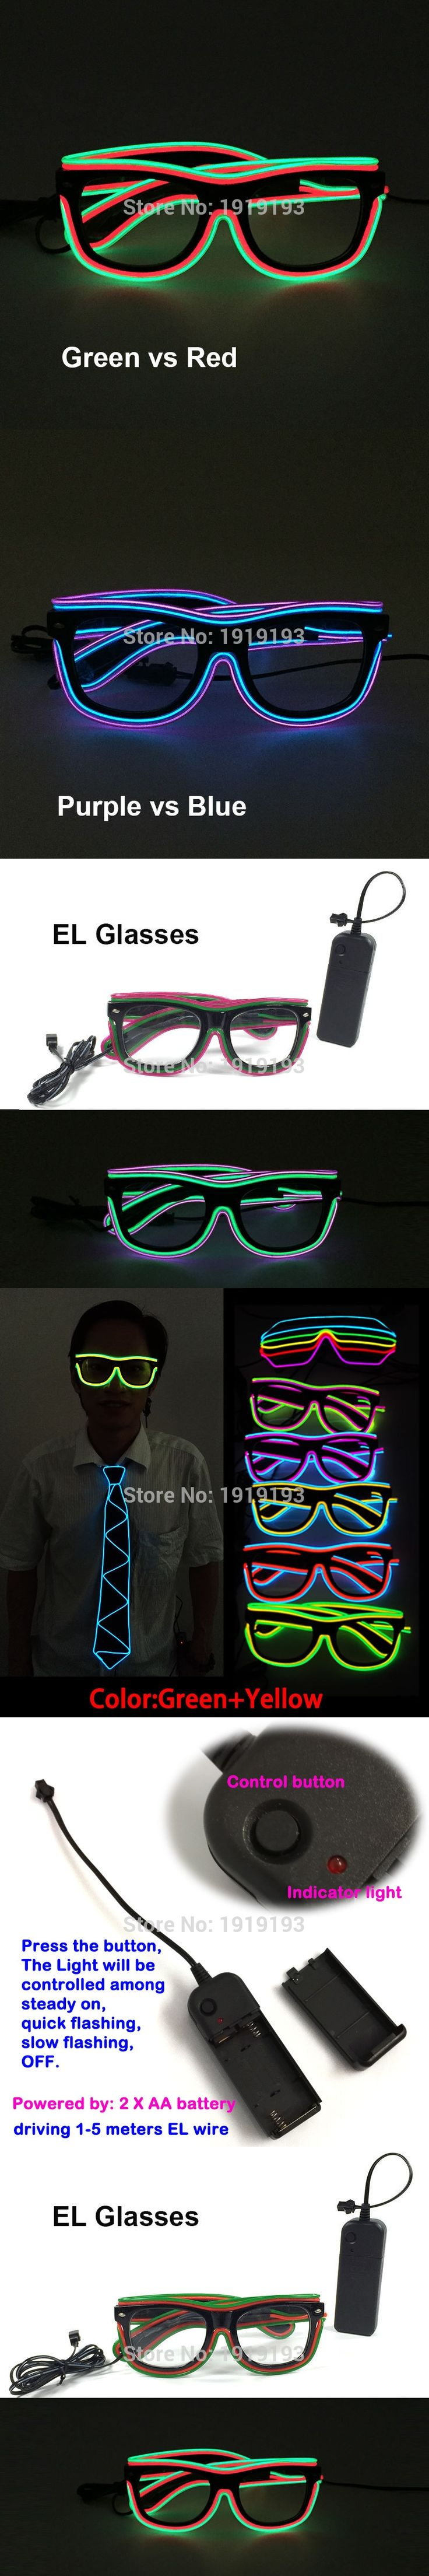 2017 New Arrival Birthday Decorative Led Strip Light Sunglasses Novelty Lighting Glowing EL wire Eyewear for Role Play Party,Bar